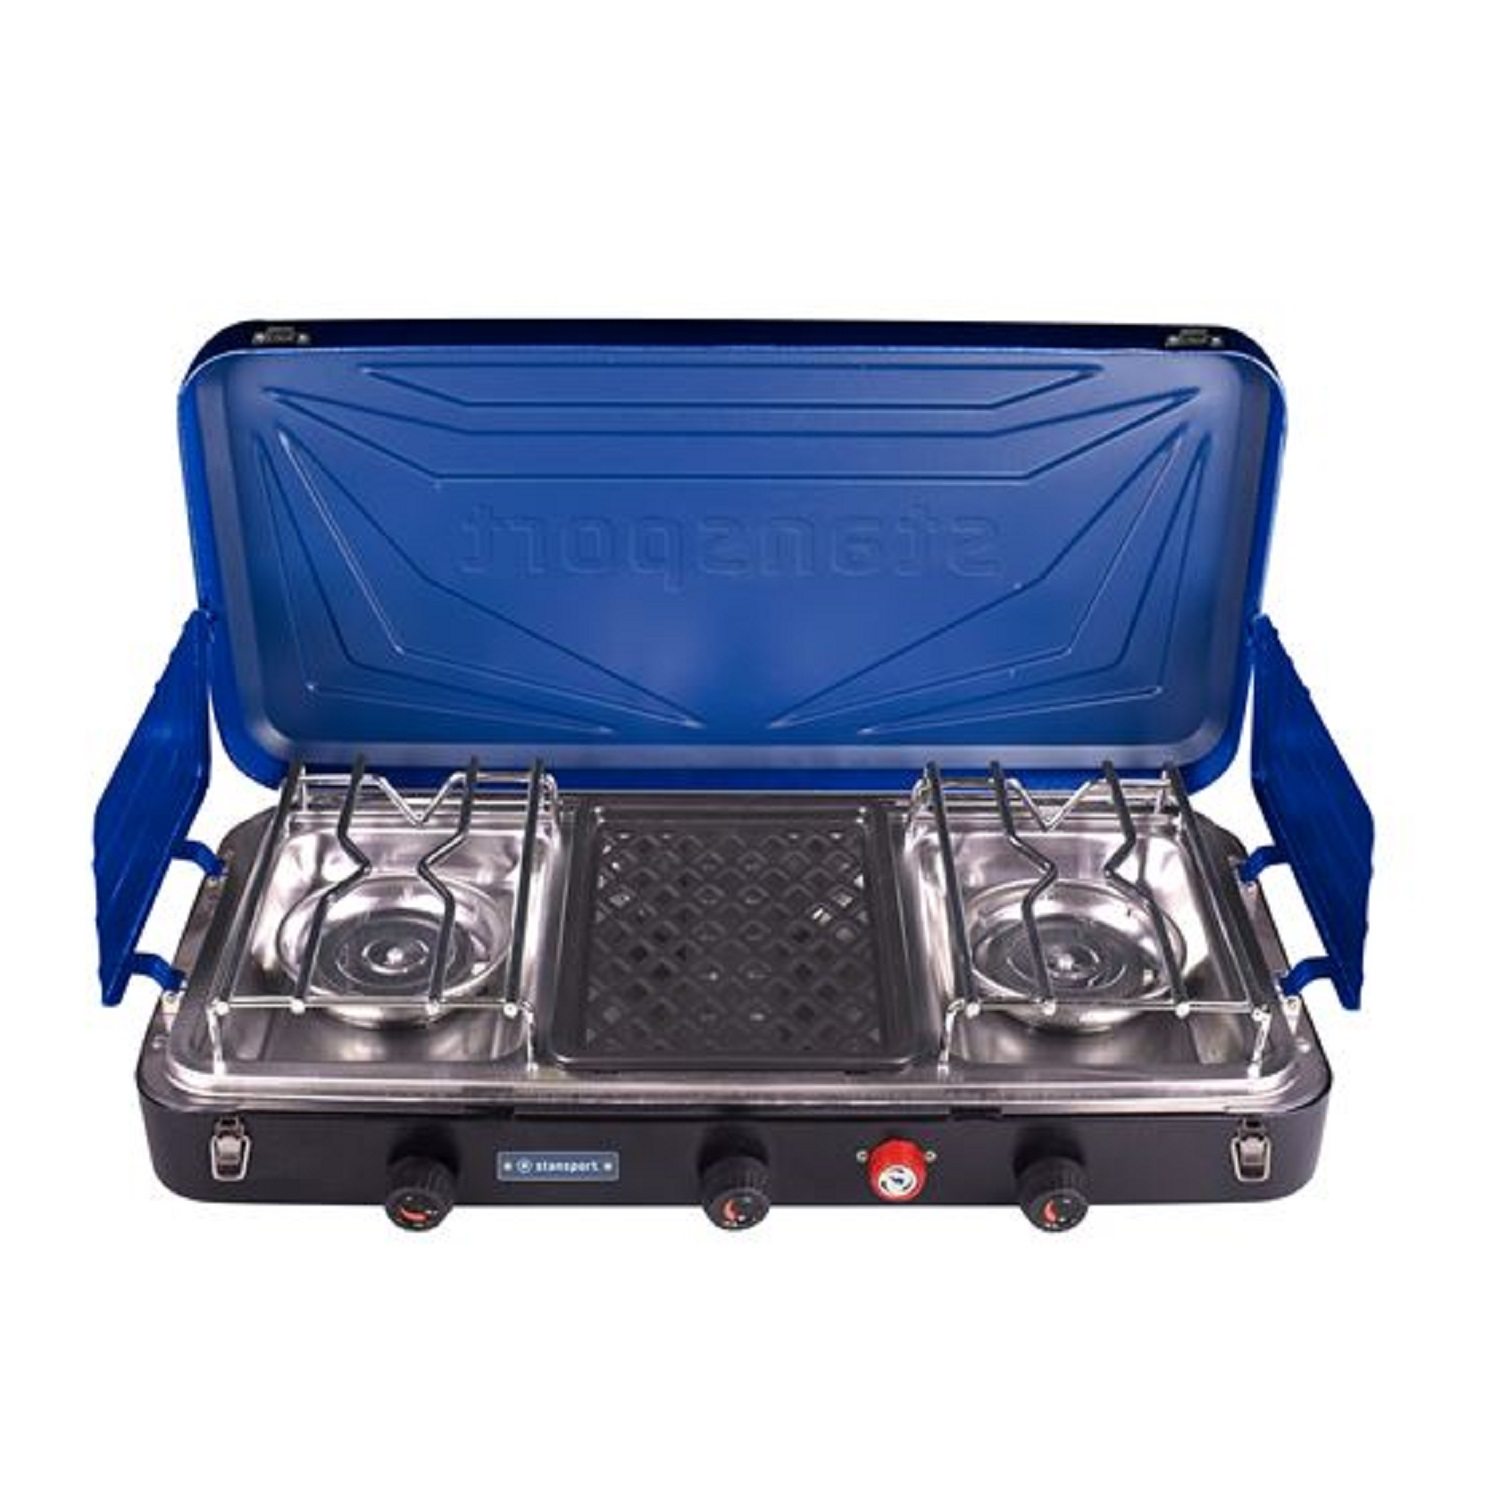 Stansport Outfitter Series 2-Burner and Grill Propane Stove by Stansport